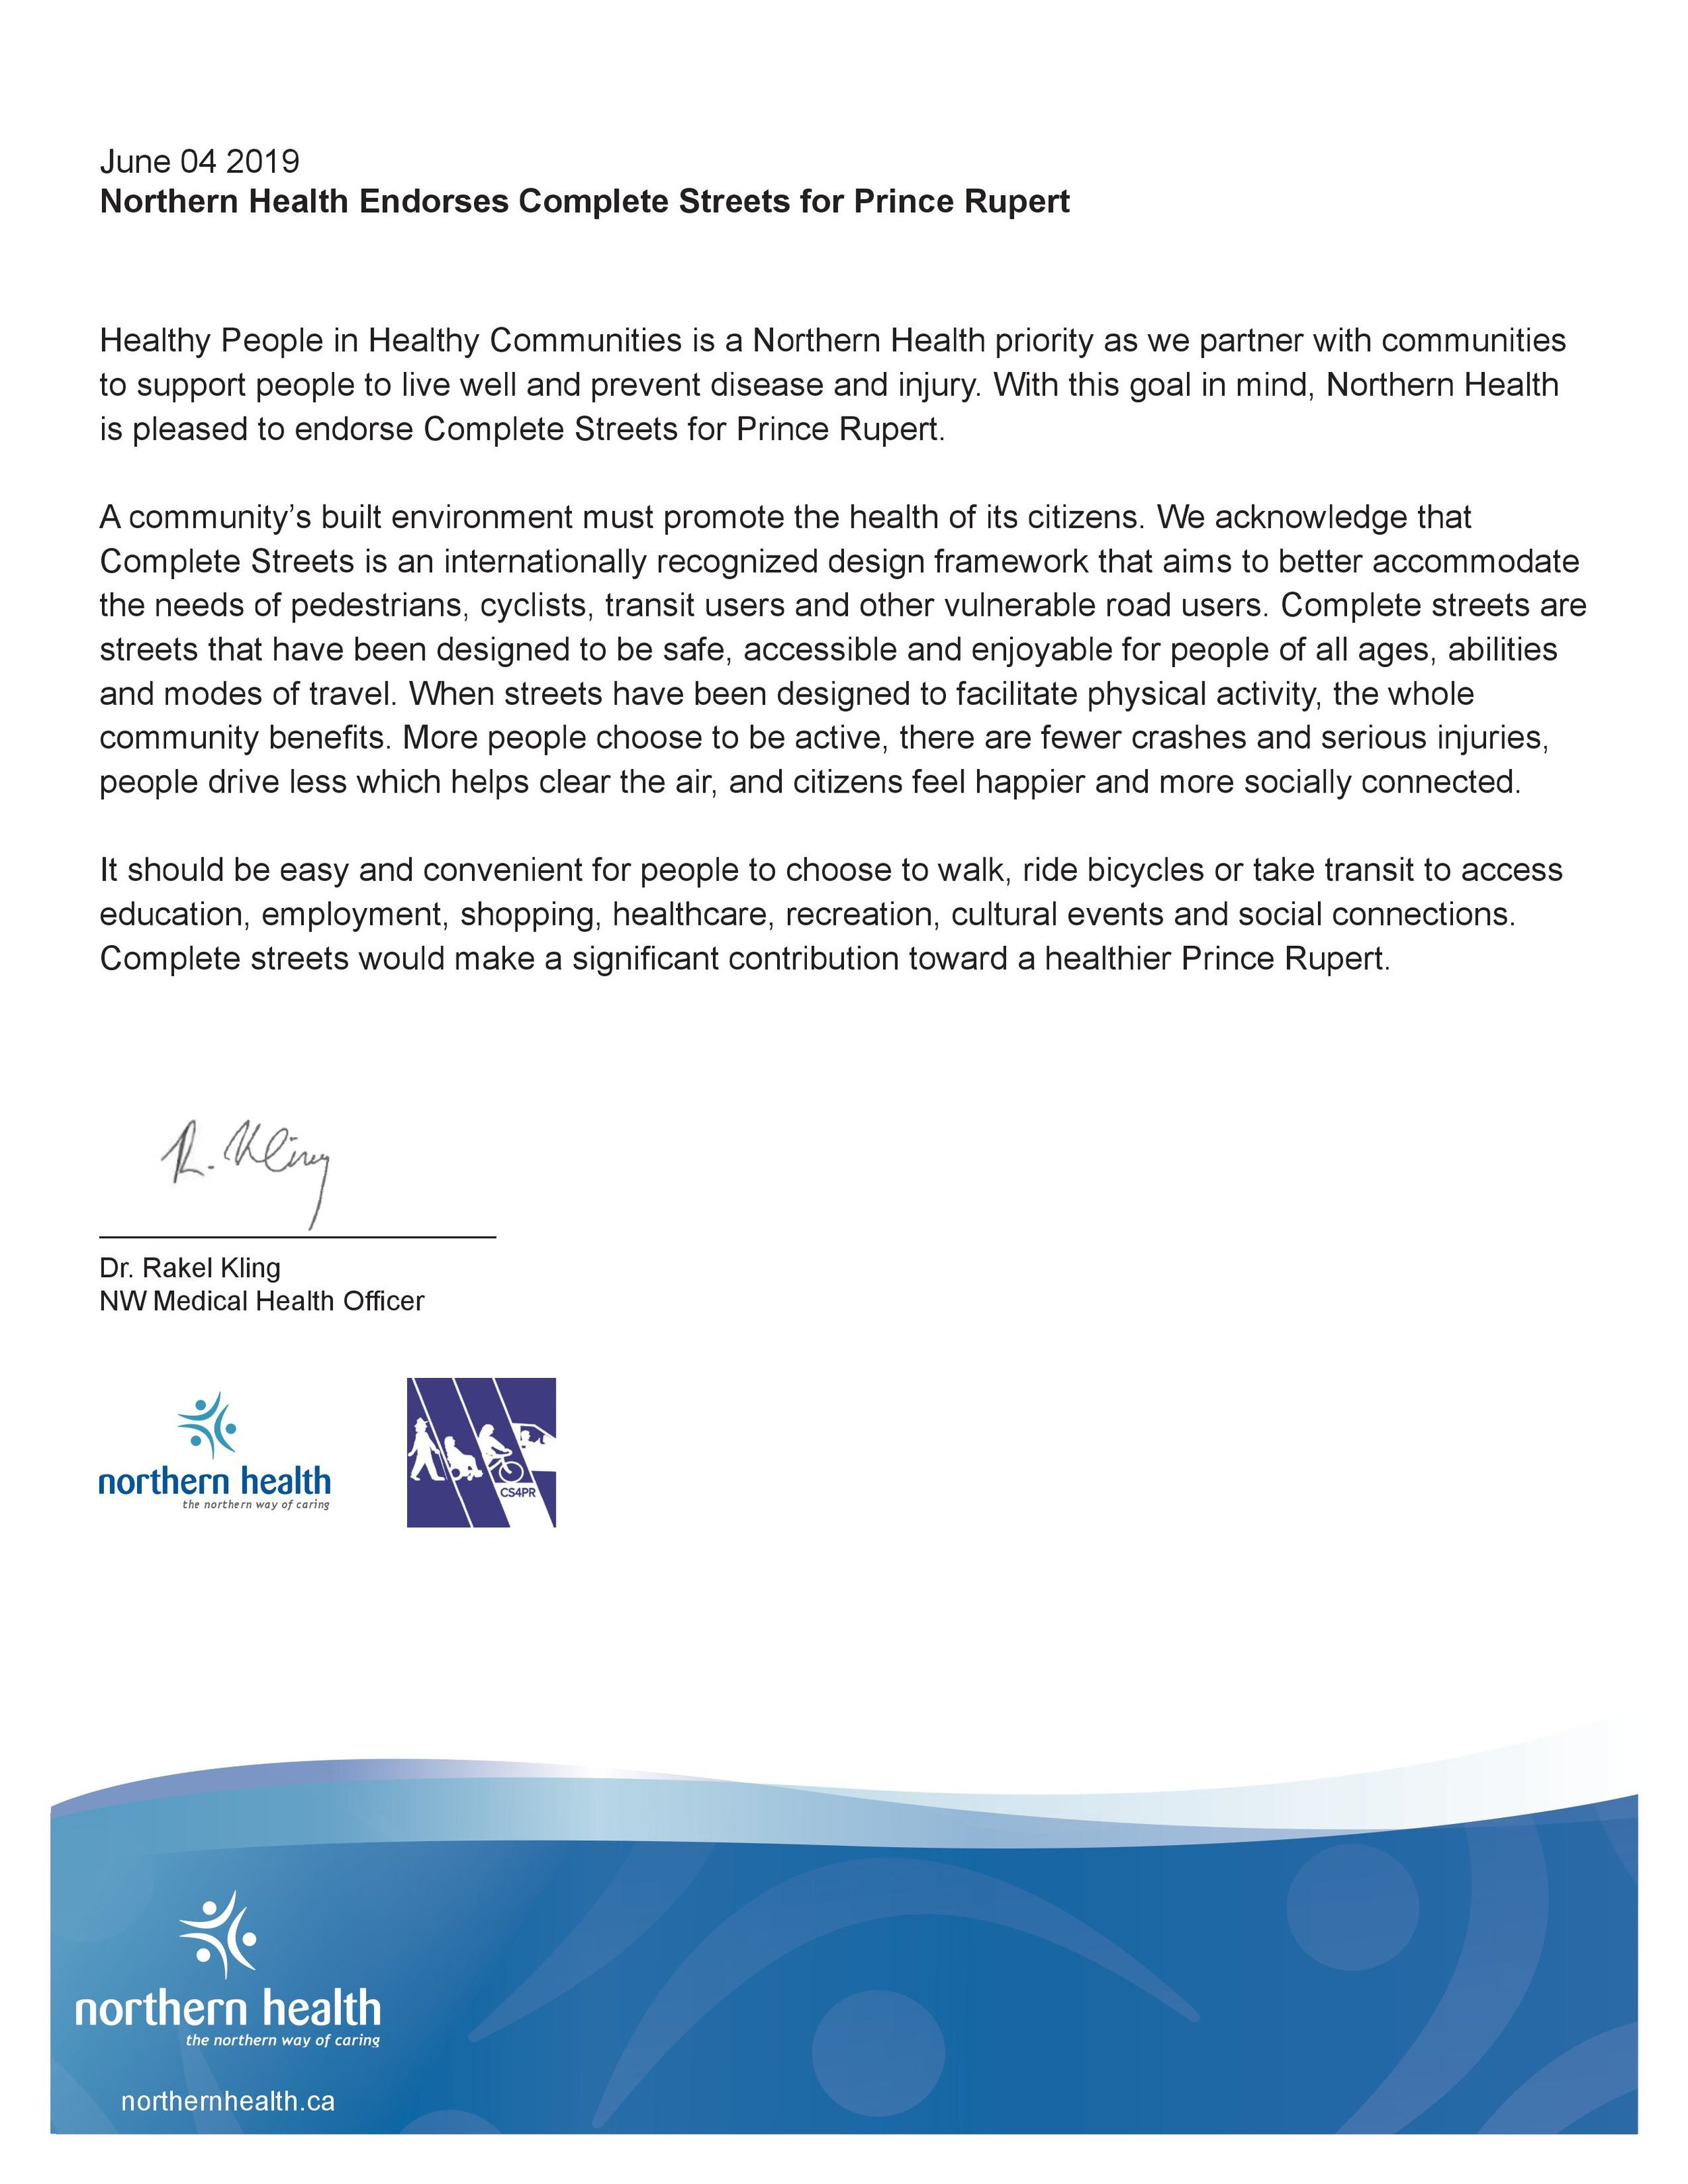 Northern Health Complete Streets Endorsement.jpg